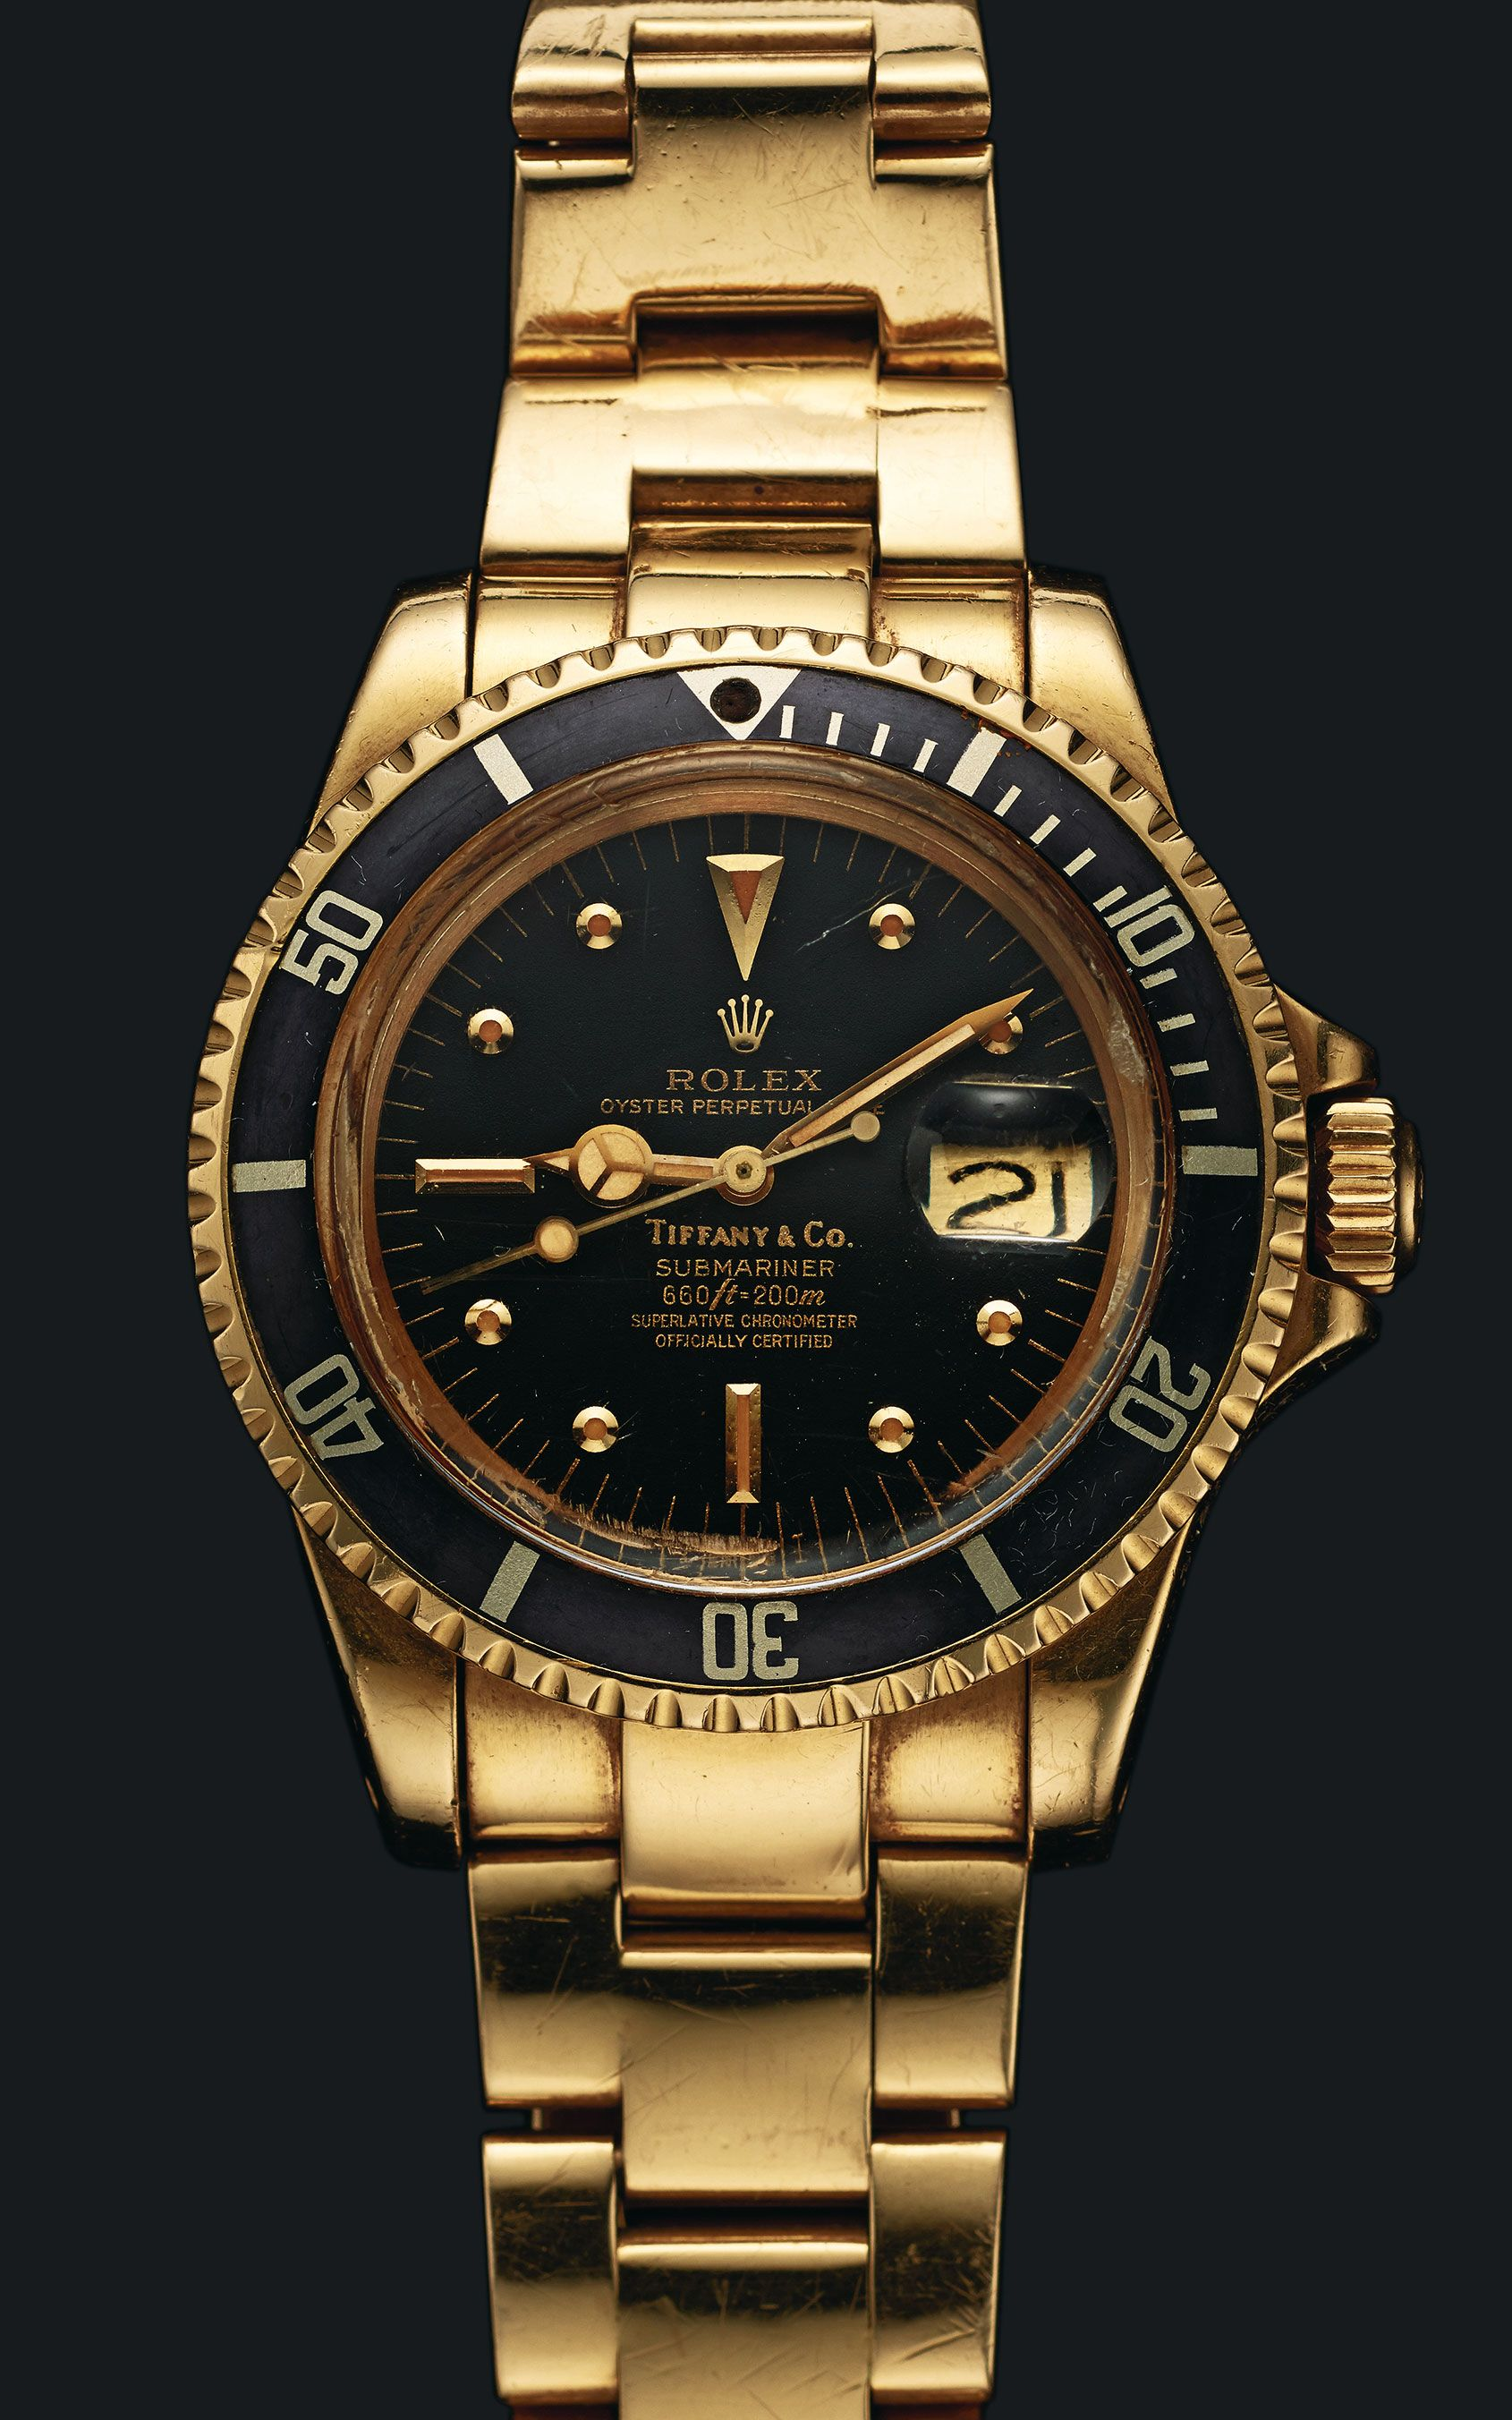 ef909b96c80 Sylvester Stallone and his Tiffany   Co Rolex Submariner